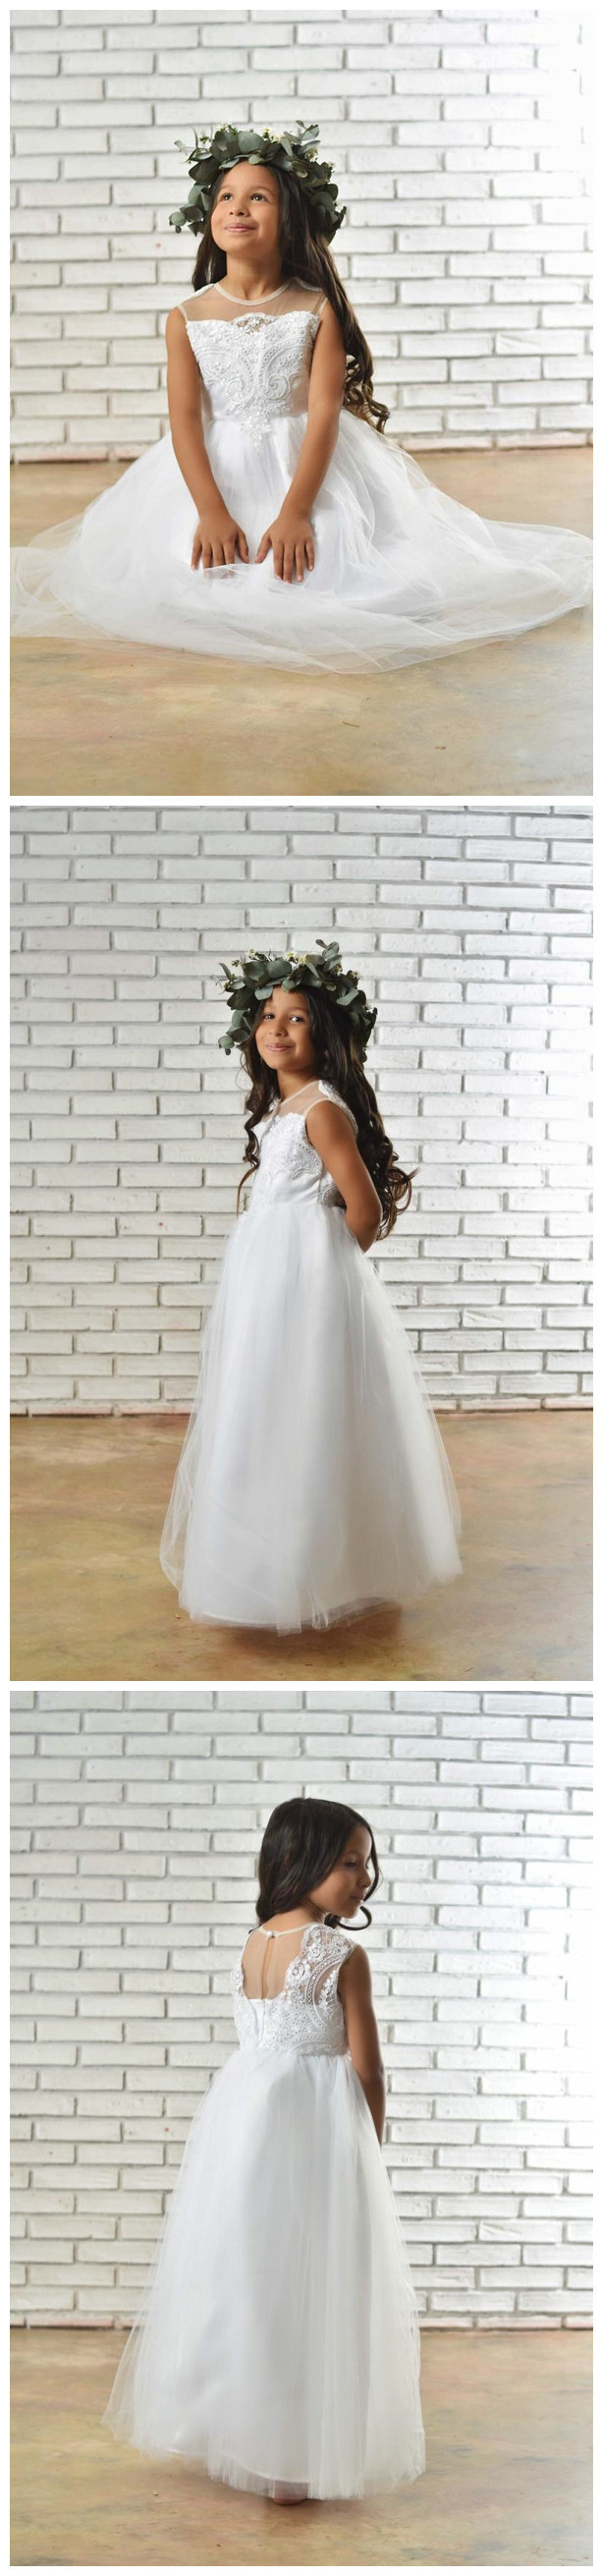 White Flower Girl Dress made with tulle, Satin and embroidered lace. White